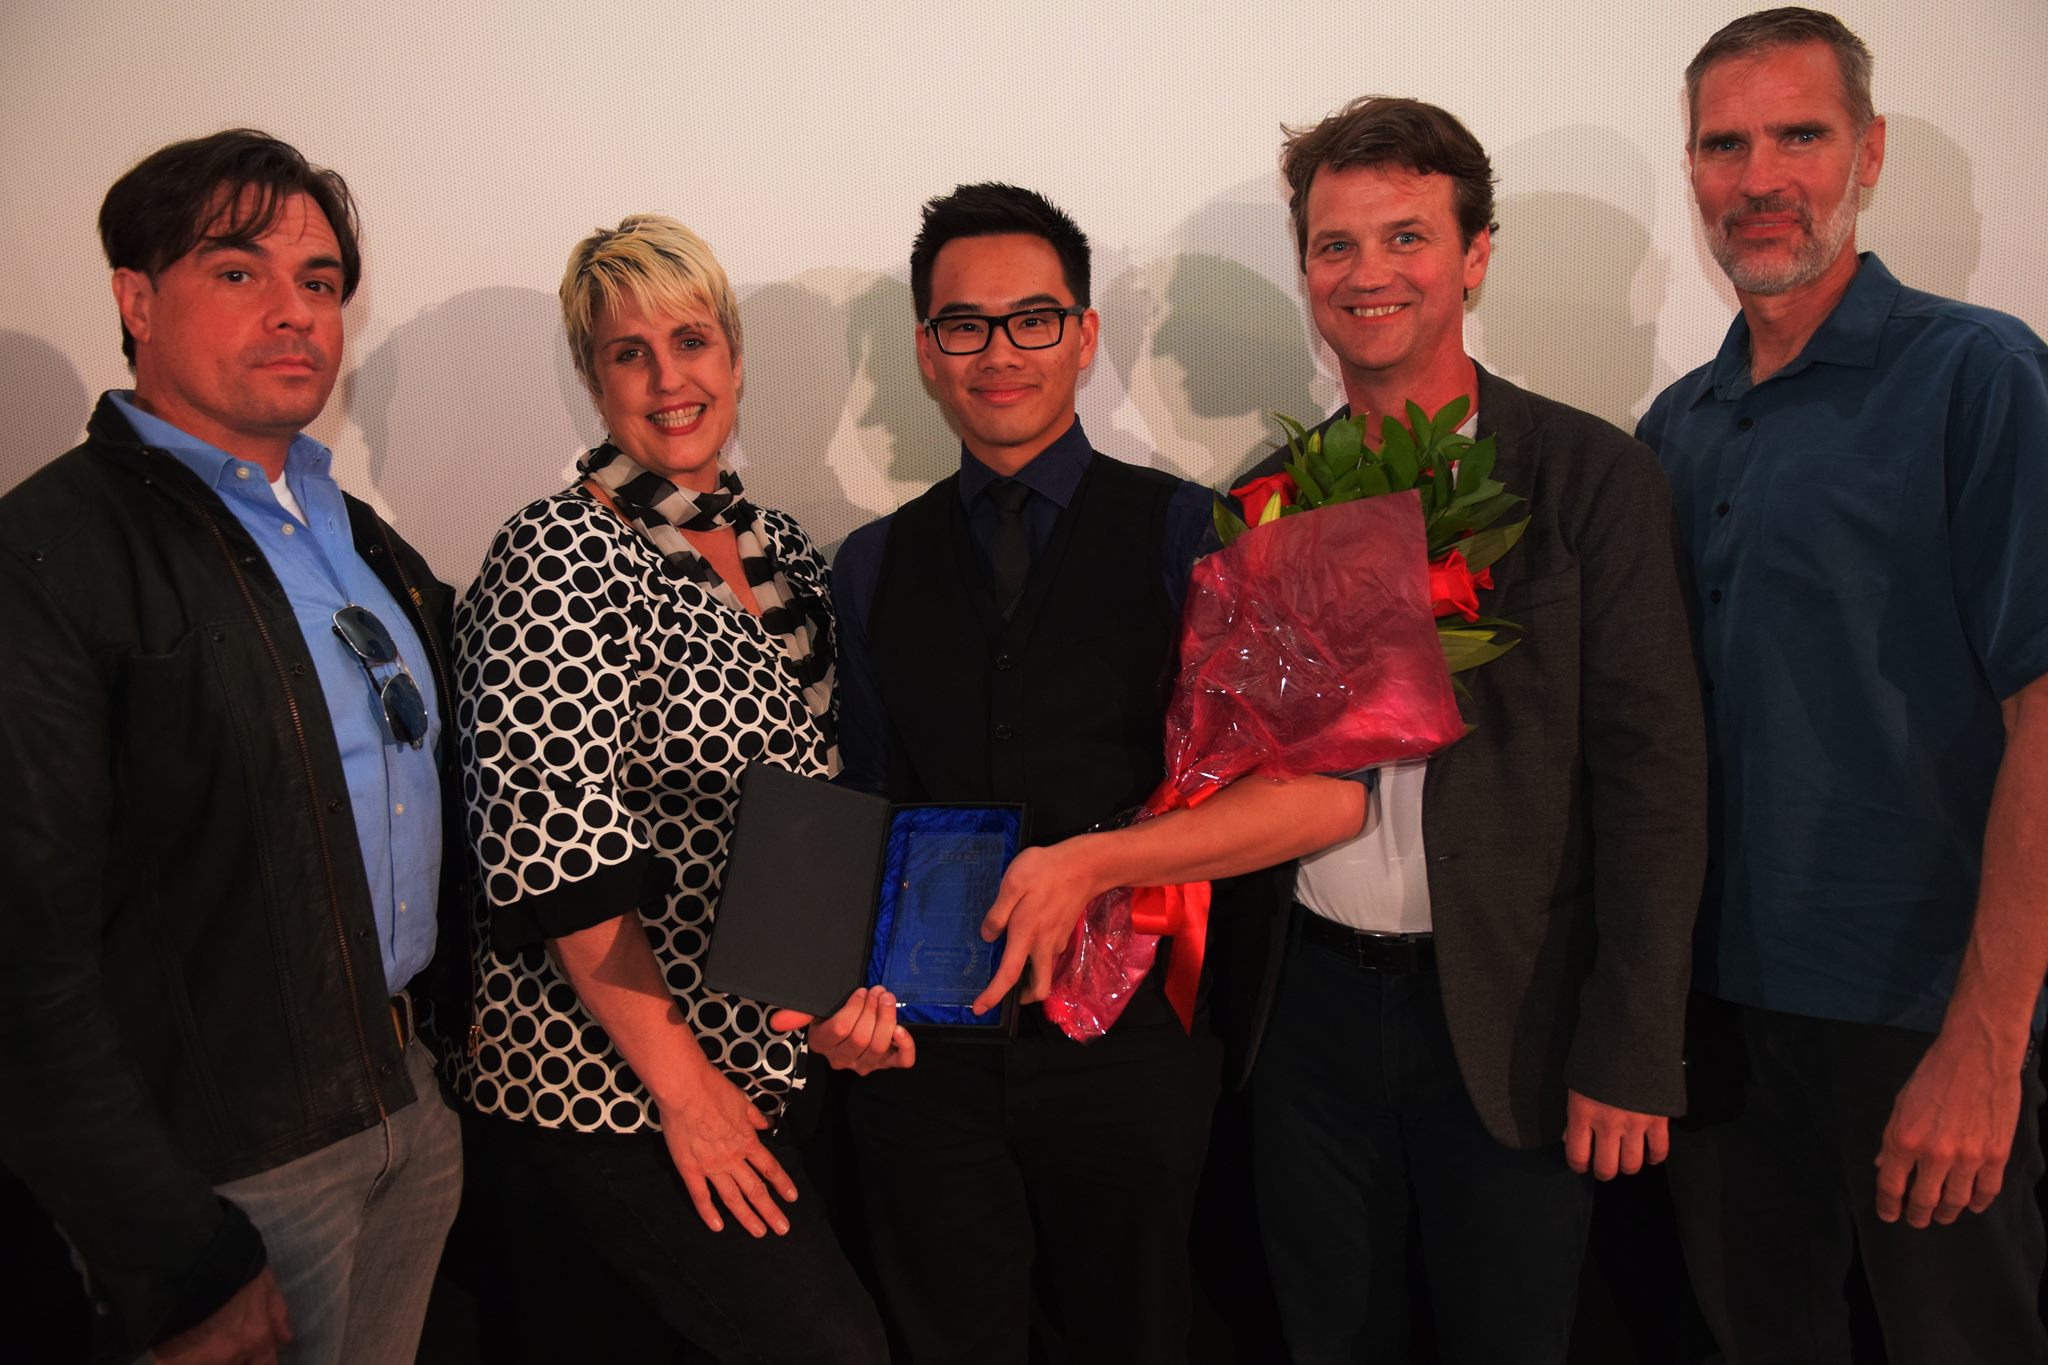 Henry at the Youth Silent Film Festival International Awards with celebrity judge panel (left to right) Tom DeSanto, Lourri Hammack, Michael Currie and Steve Oster